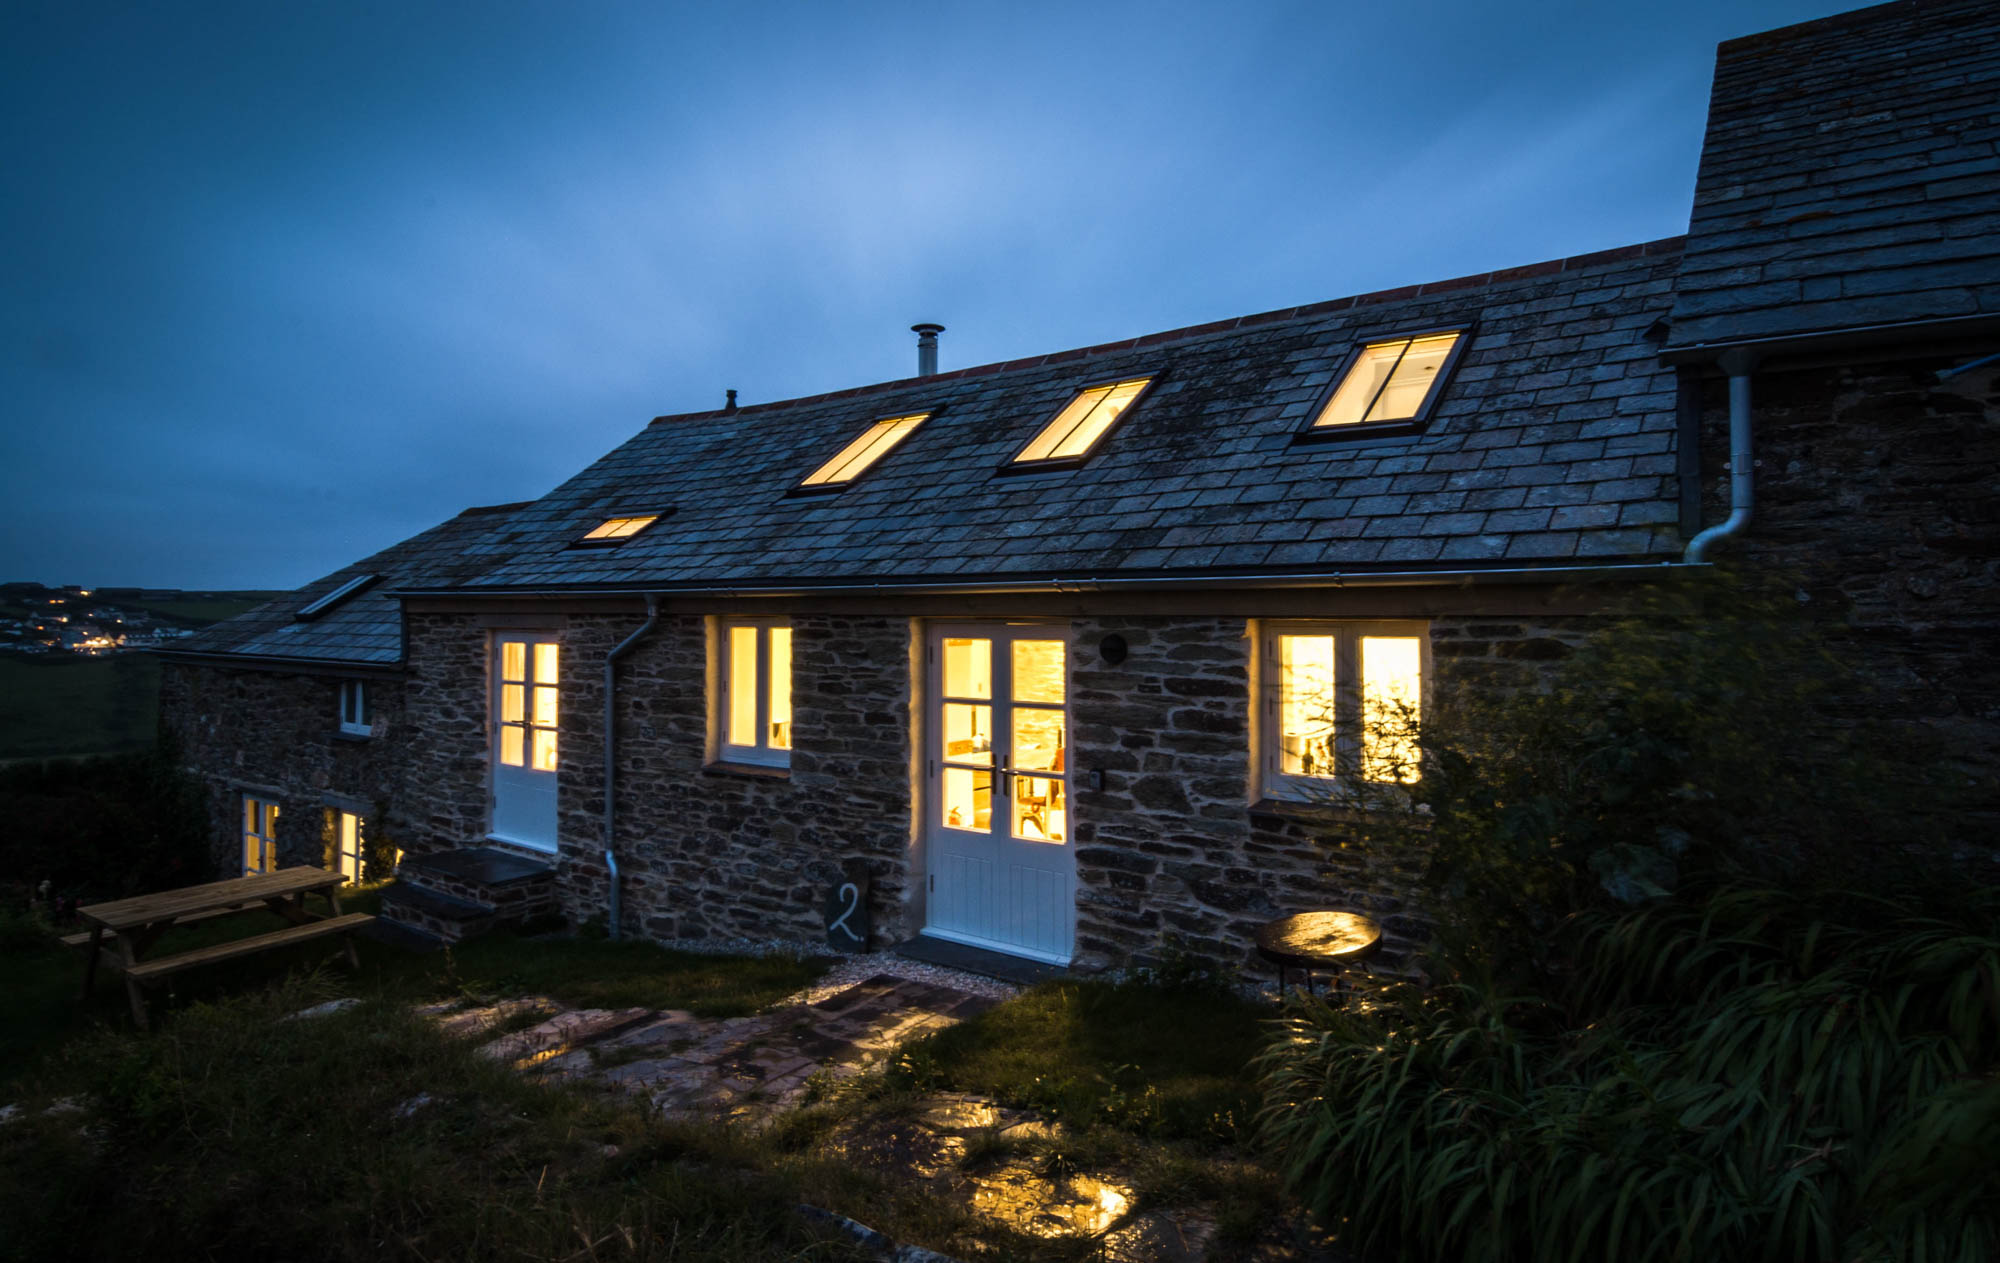 Exterior view of the cottage facade at night showing the new windows.